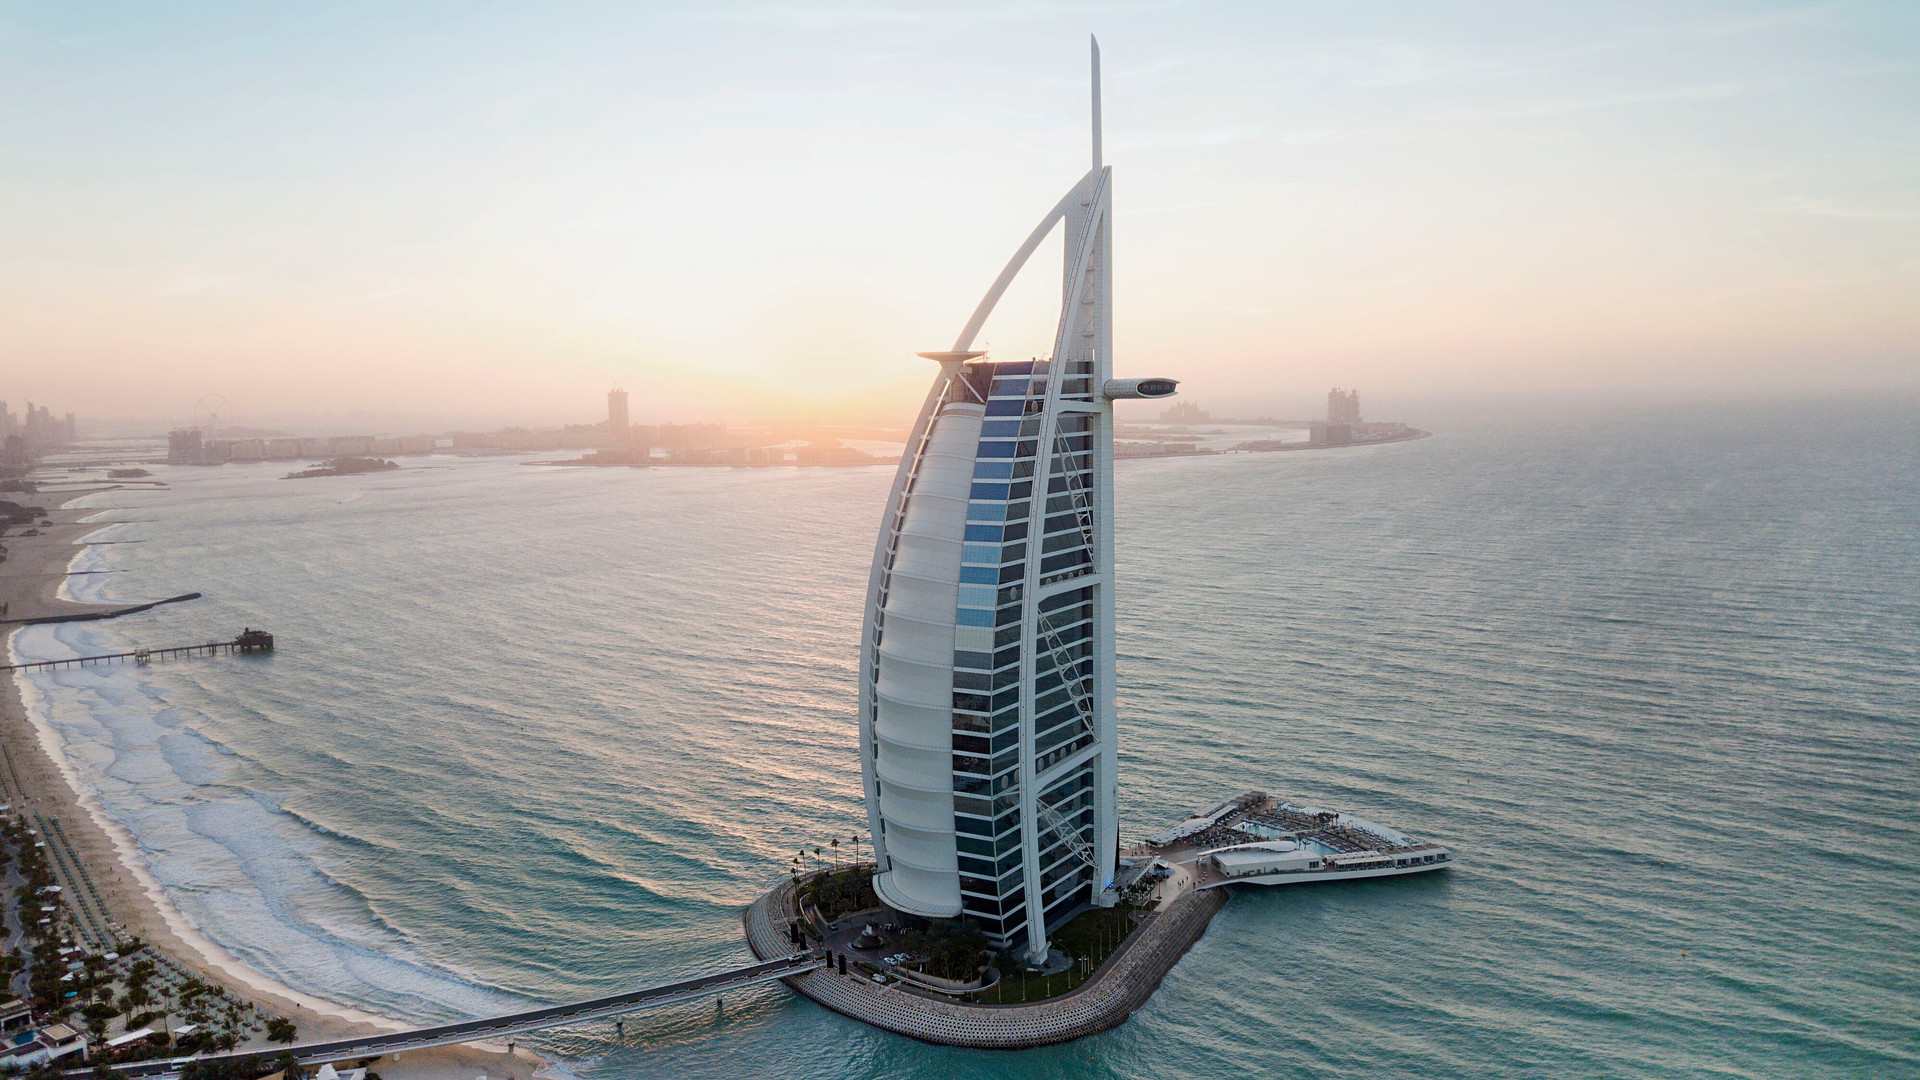 The Jumeirah Passport to Luxury program is an invitation-only program that provides exclusive benefits and VIP status at any of the Jumeirah properties around the world. These benefits include category upgrades, hotel credits, and complimentary breakfast.